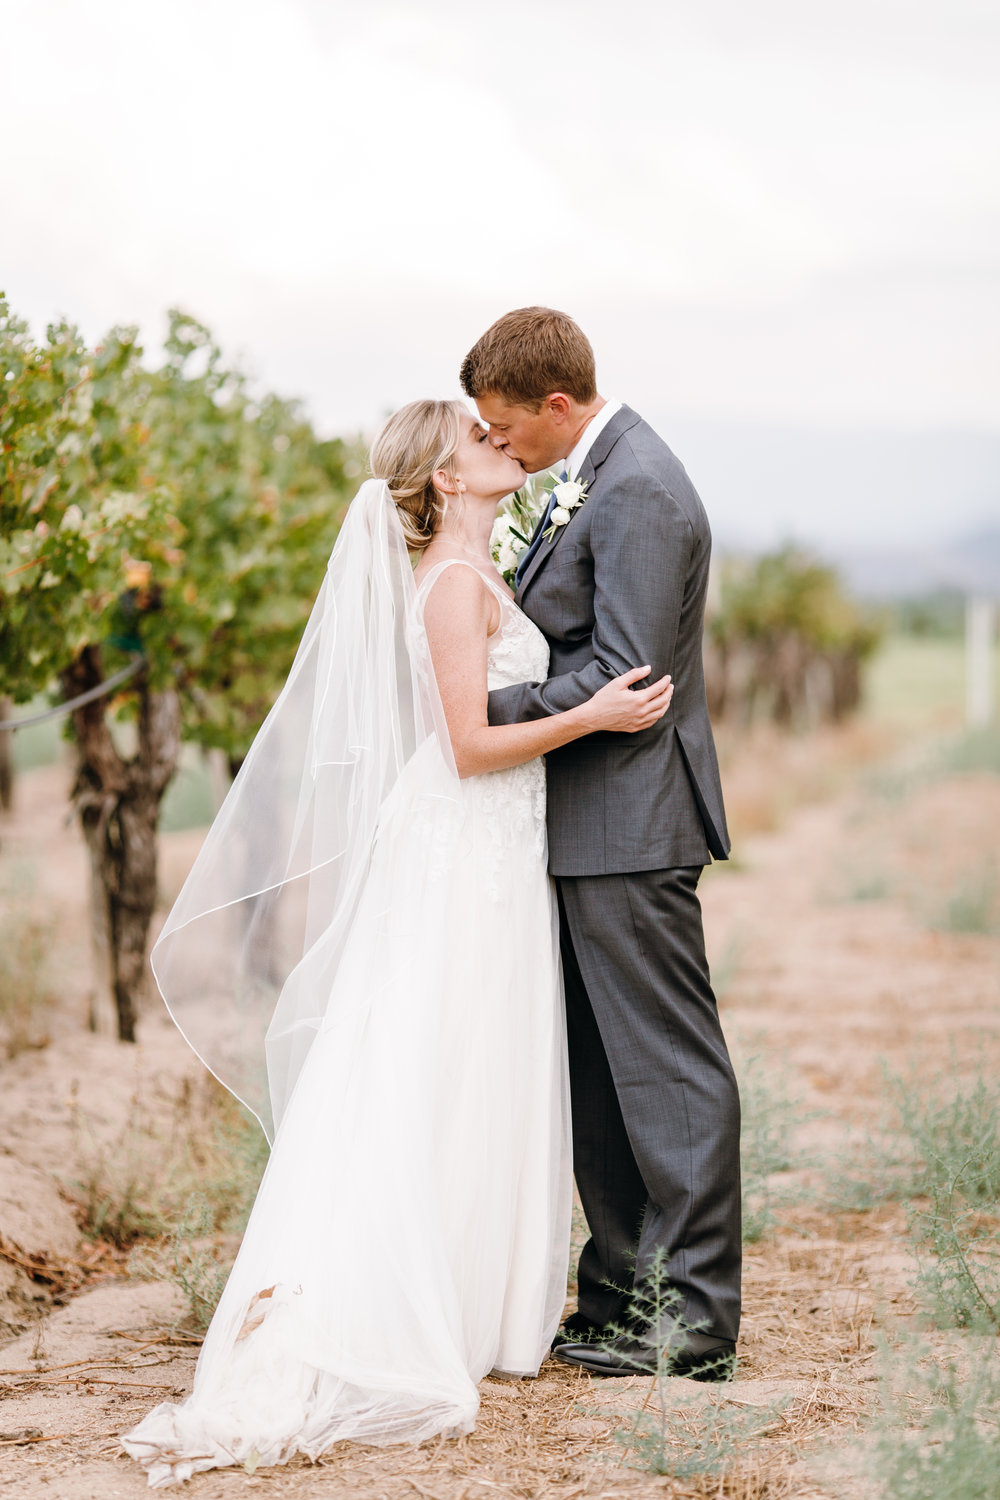 KaraNixonWeddings-Temecula-Wedding-59.jpg